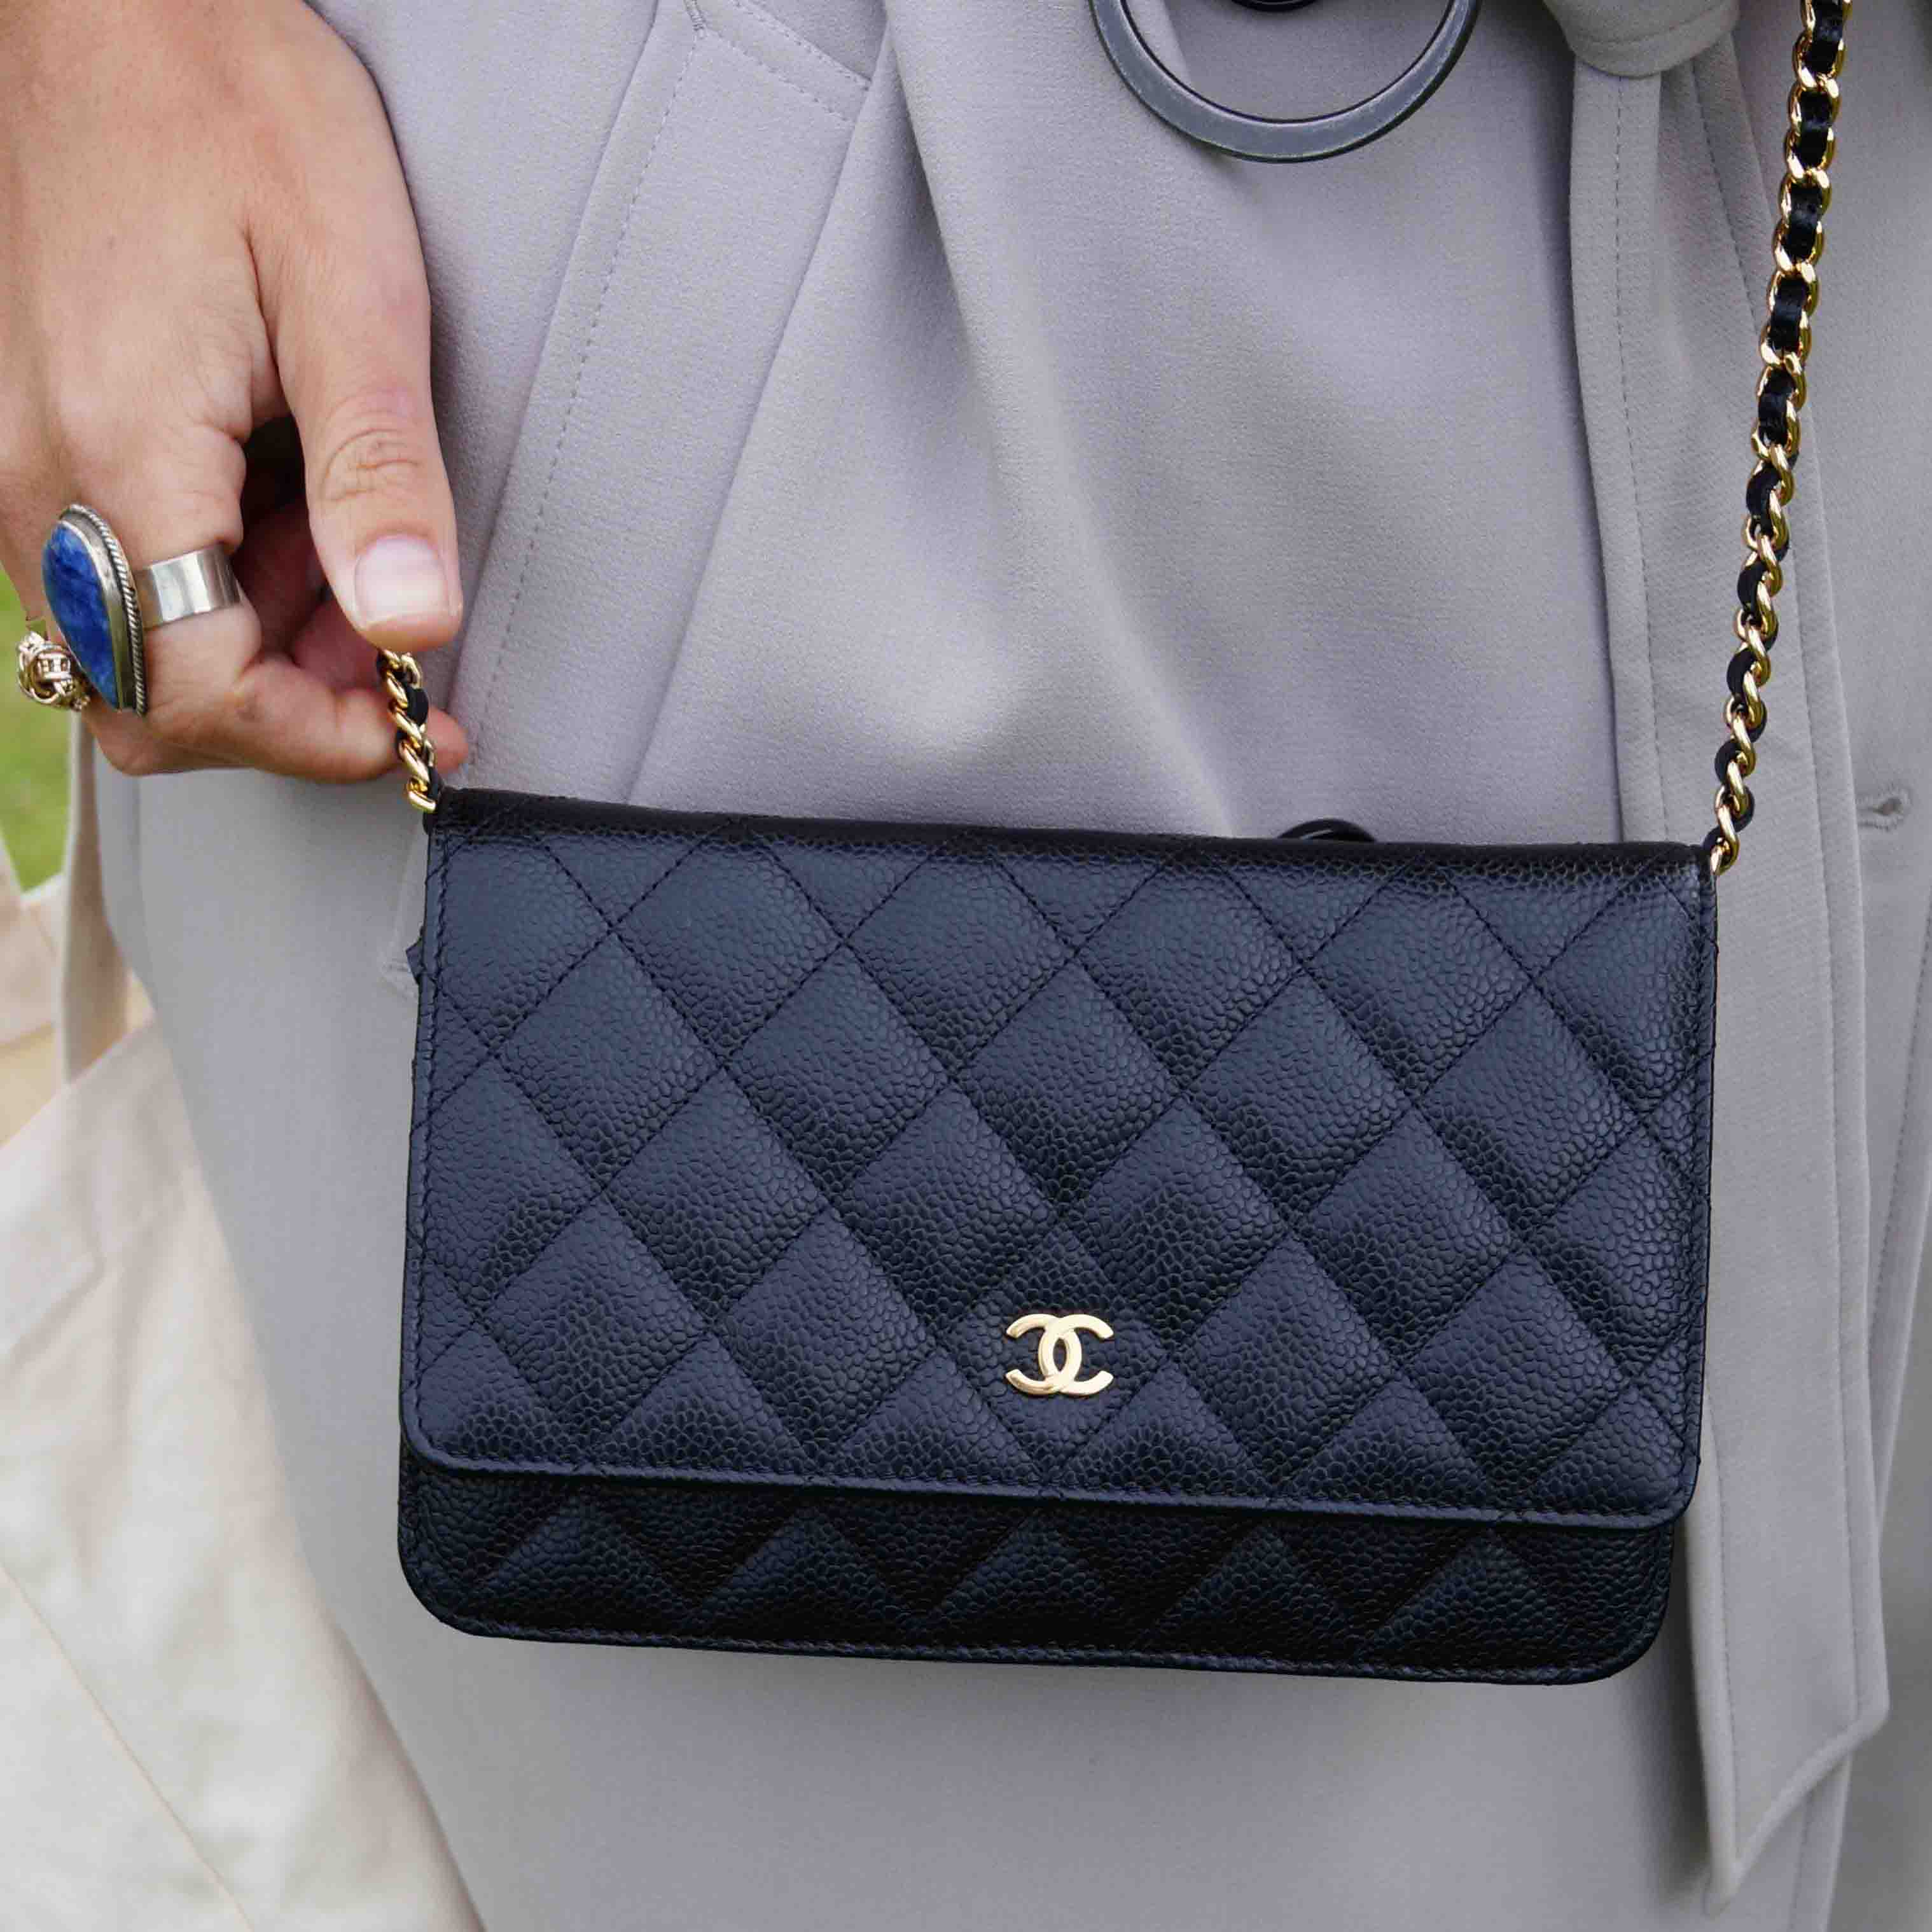 Bag at You - Fashion Blog - Fierce Fashion Festival - Chanel